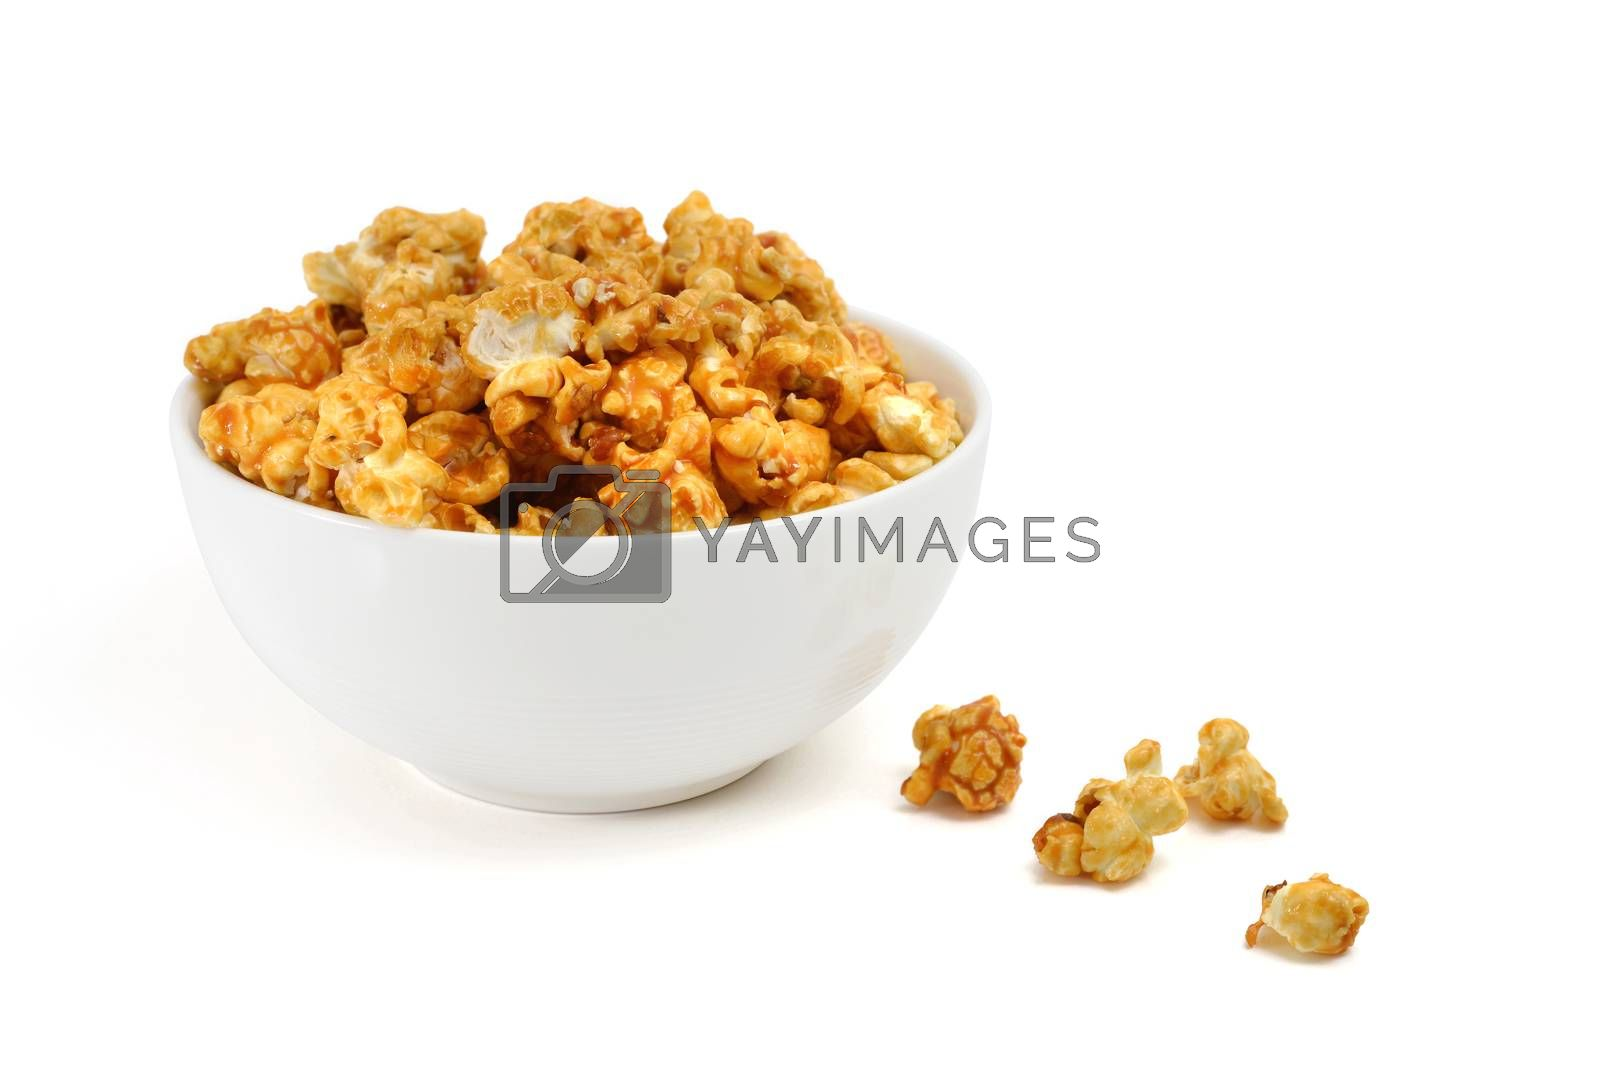 Royalty free image of Popcorn by antpkr